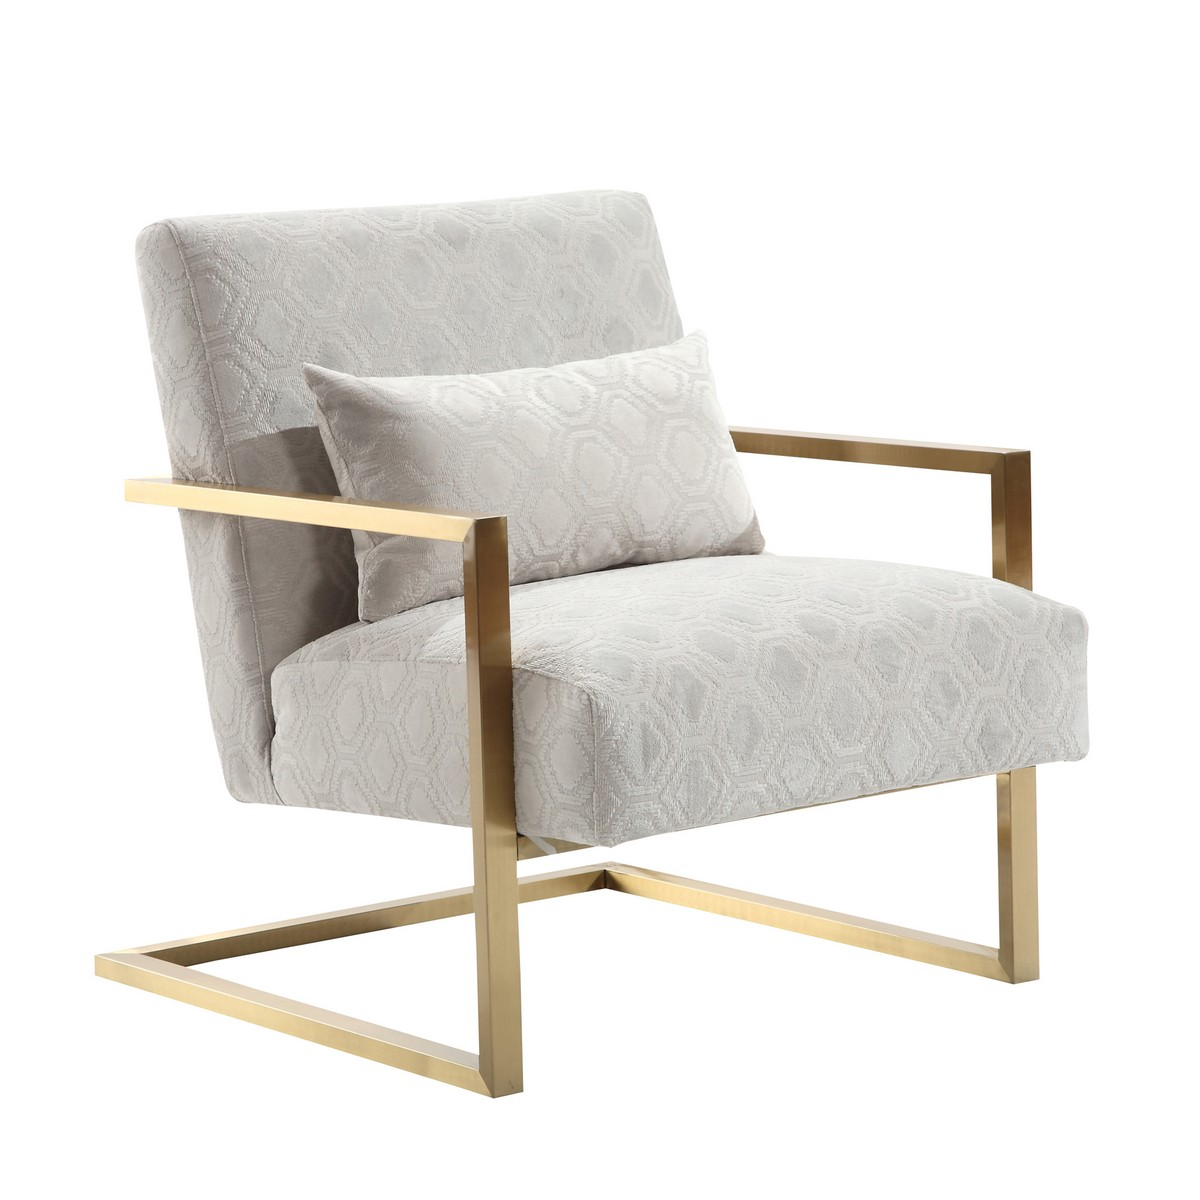 Armen living skyline modern accent chair in cream chenille for Accent furniture